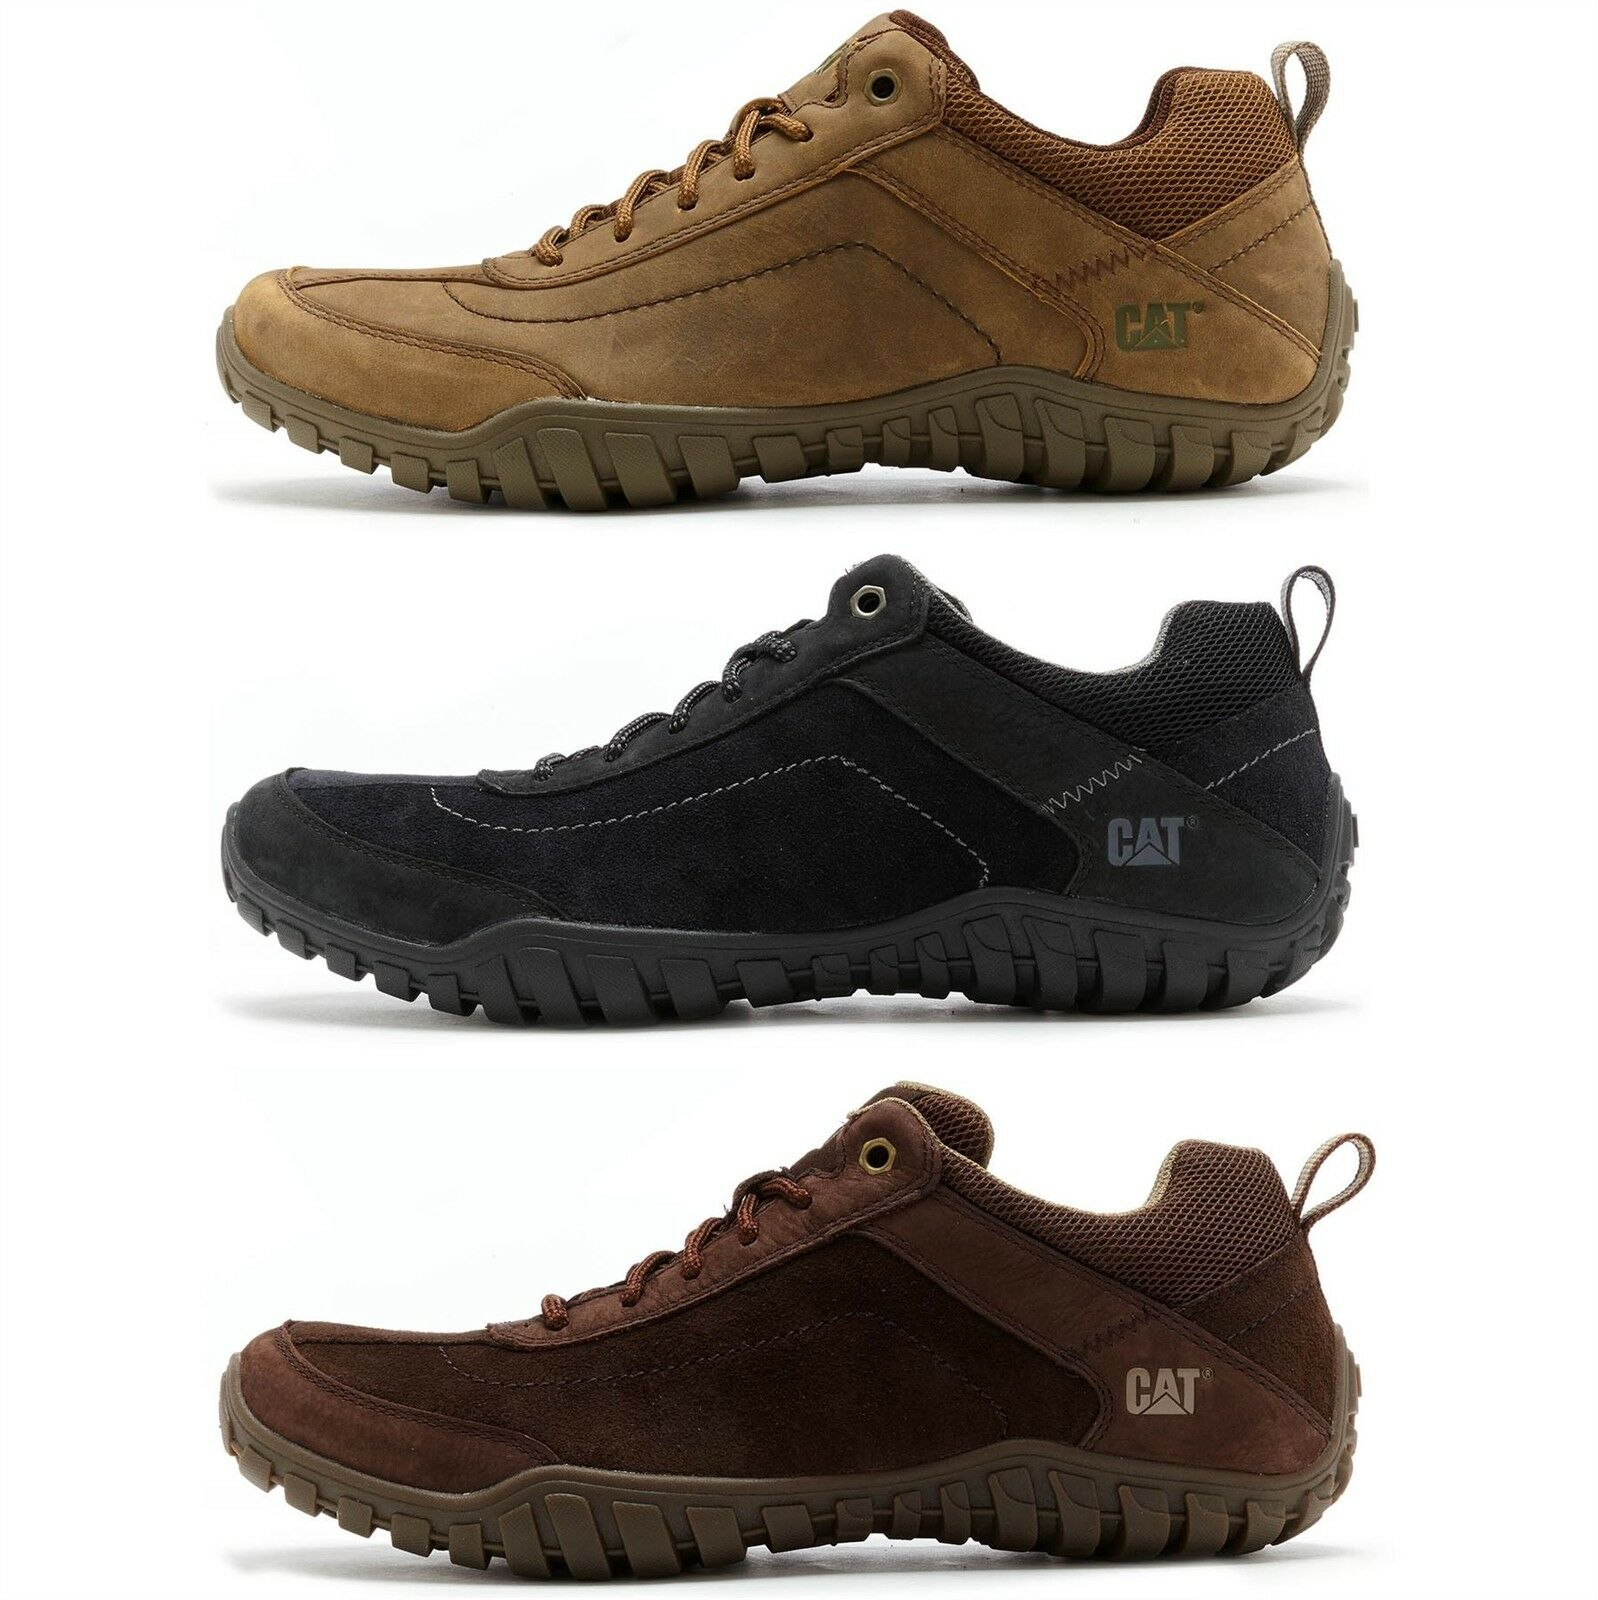 Caterpillar CAT Arise Suede Hiking Wide Shoe in Black & Brown Beaned